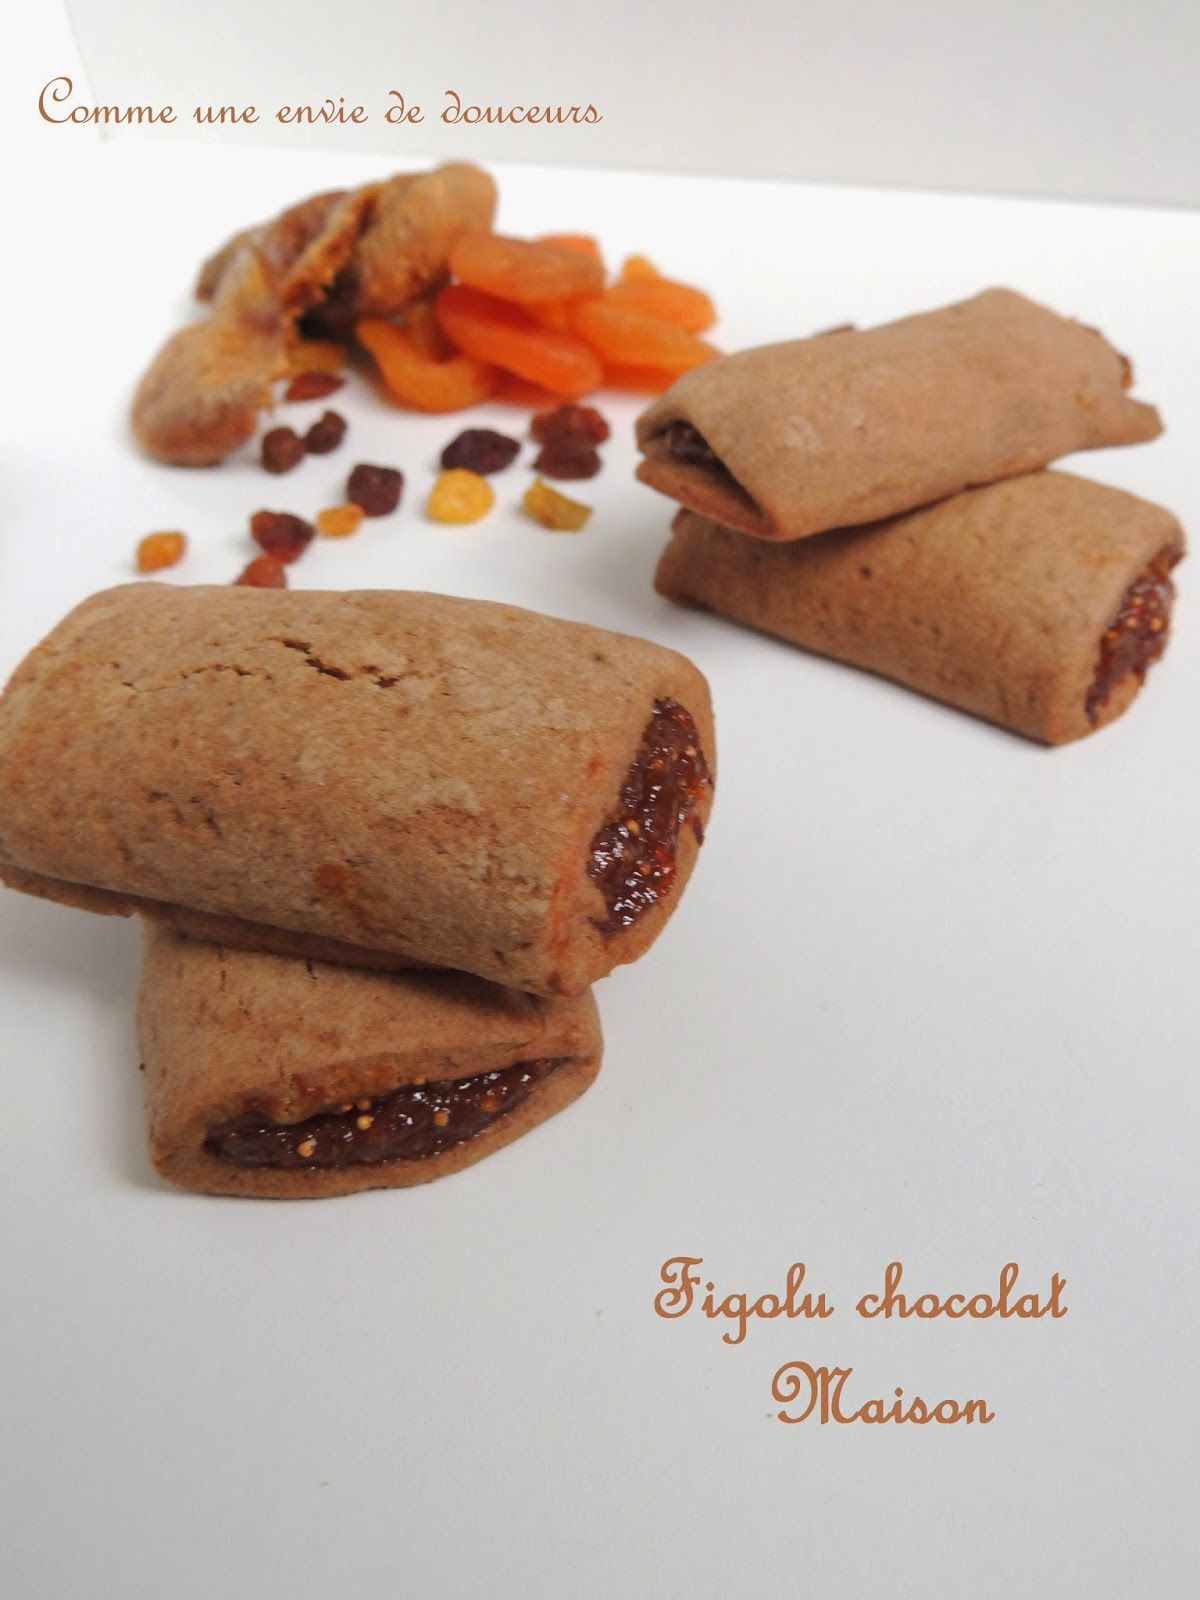 Comme une envie de douceurs: Kangos maison tout chocolat & Figolu / Biscuits filled with chocolate or fig